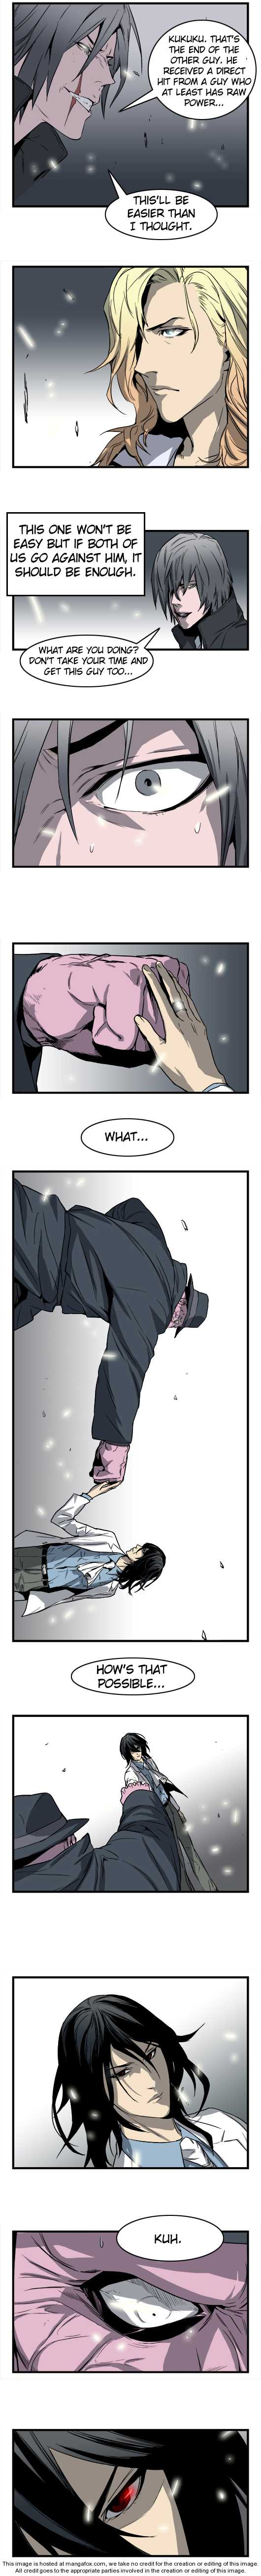 Noblesse 32 Page 3